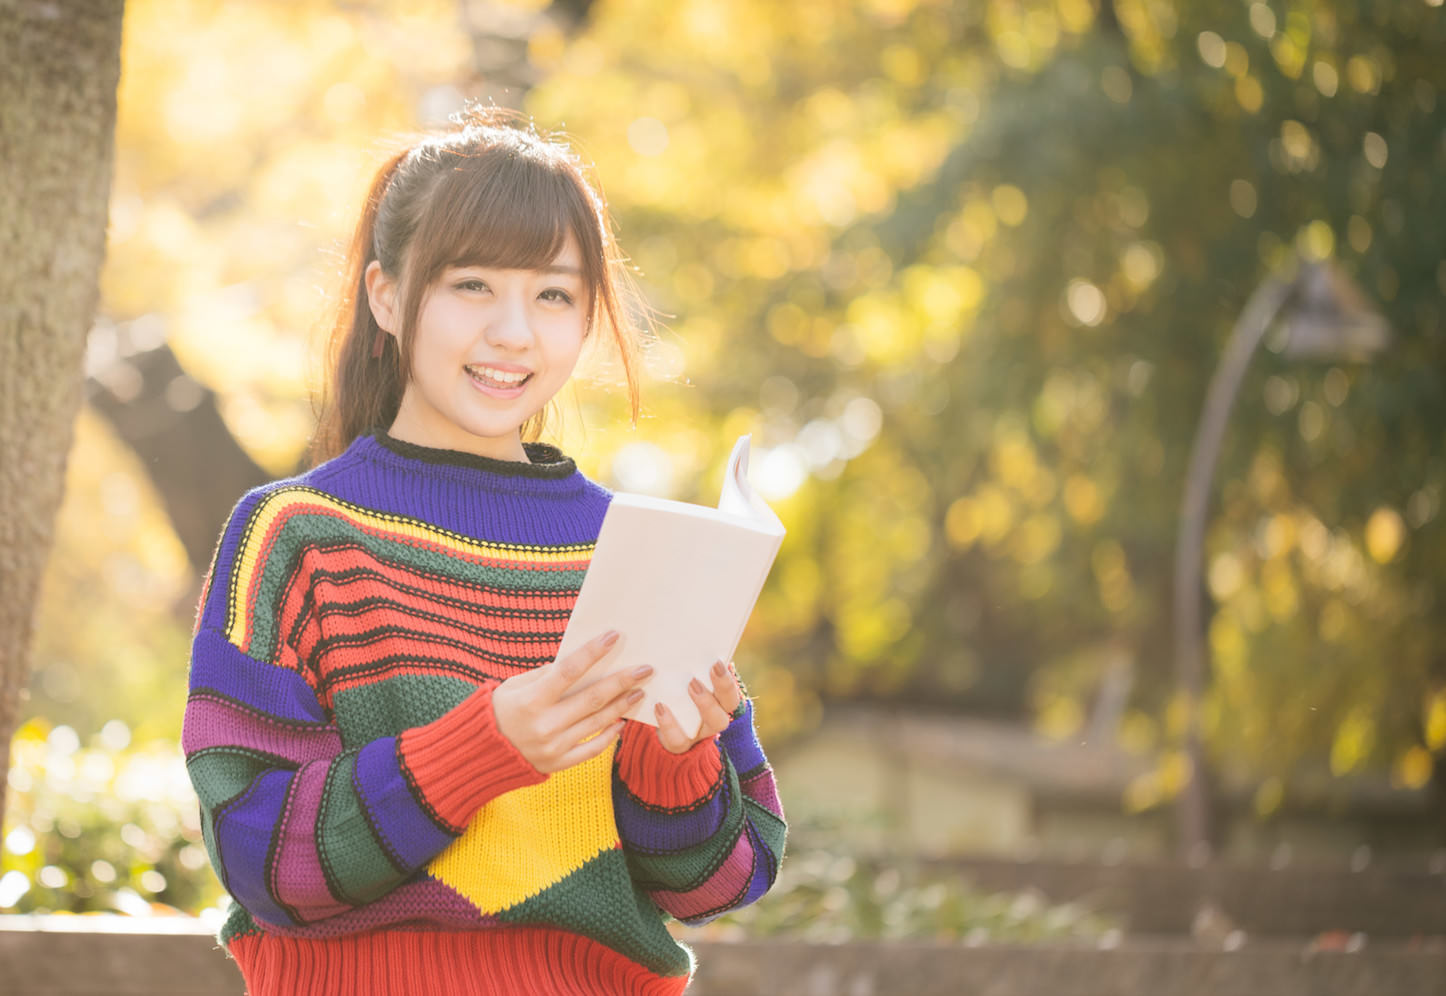 Yuka smiling and reading a book